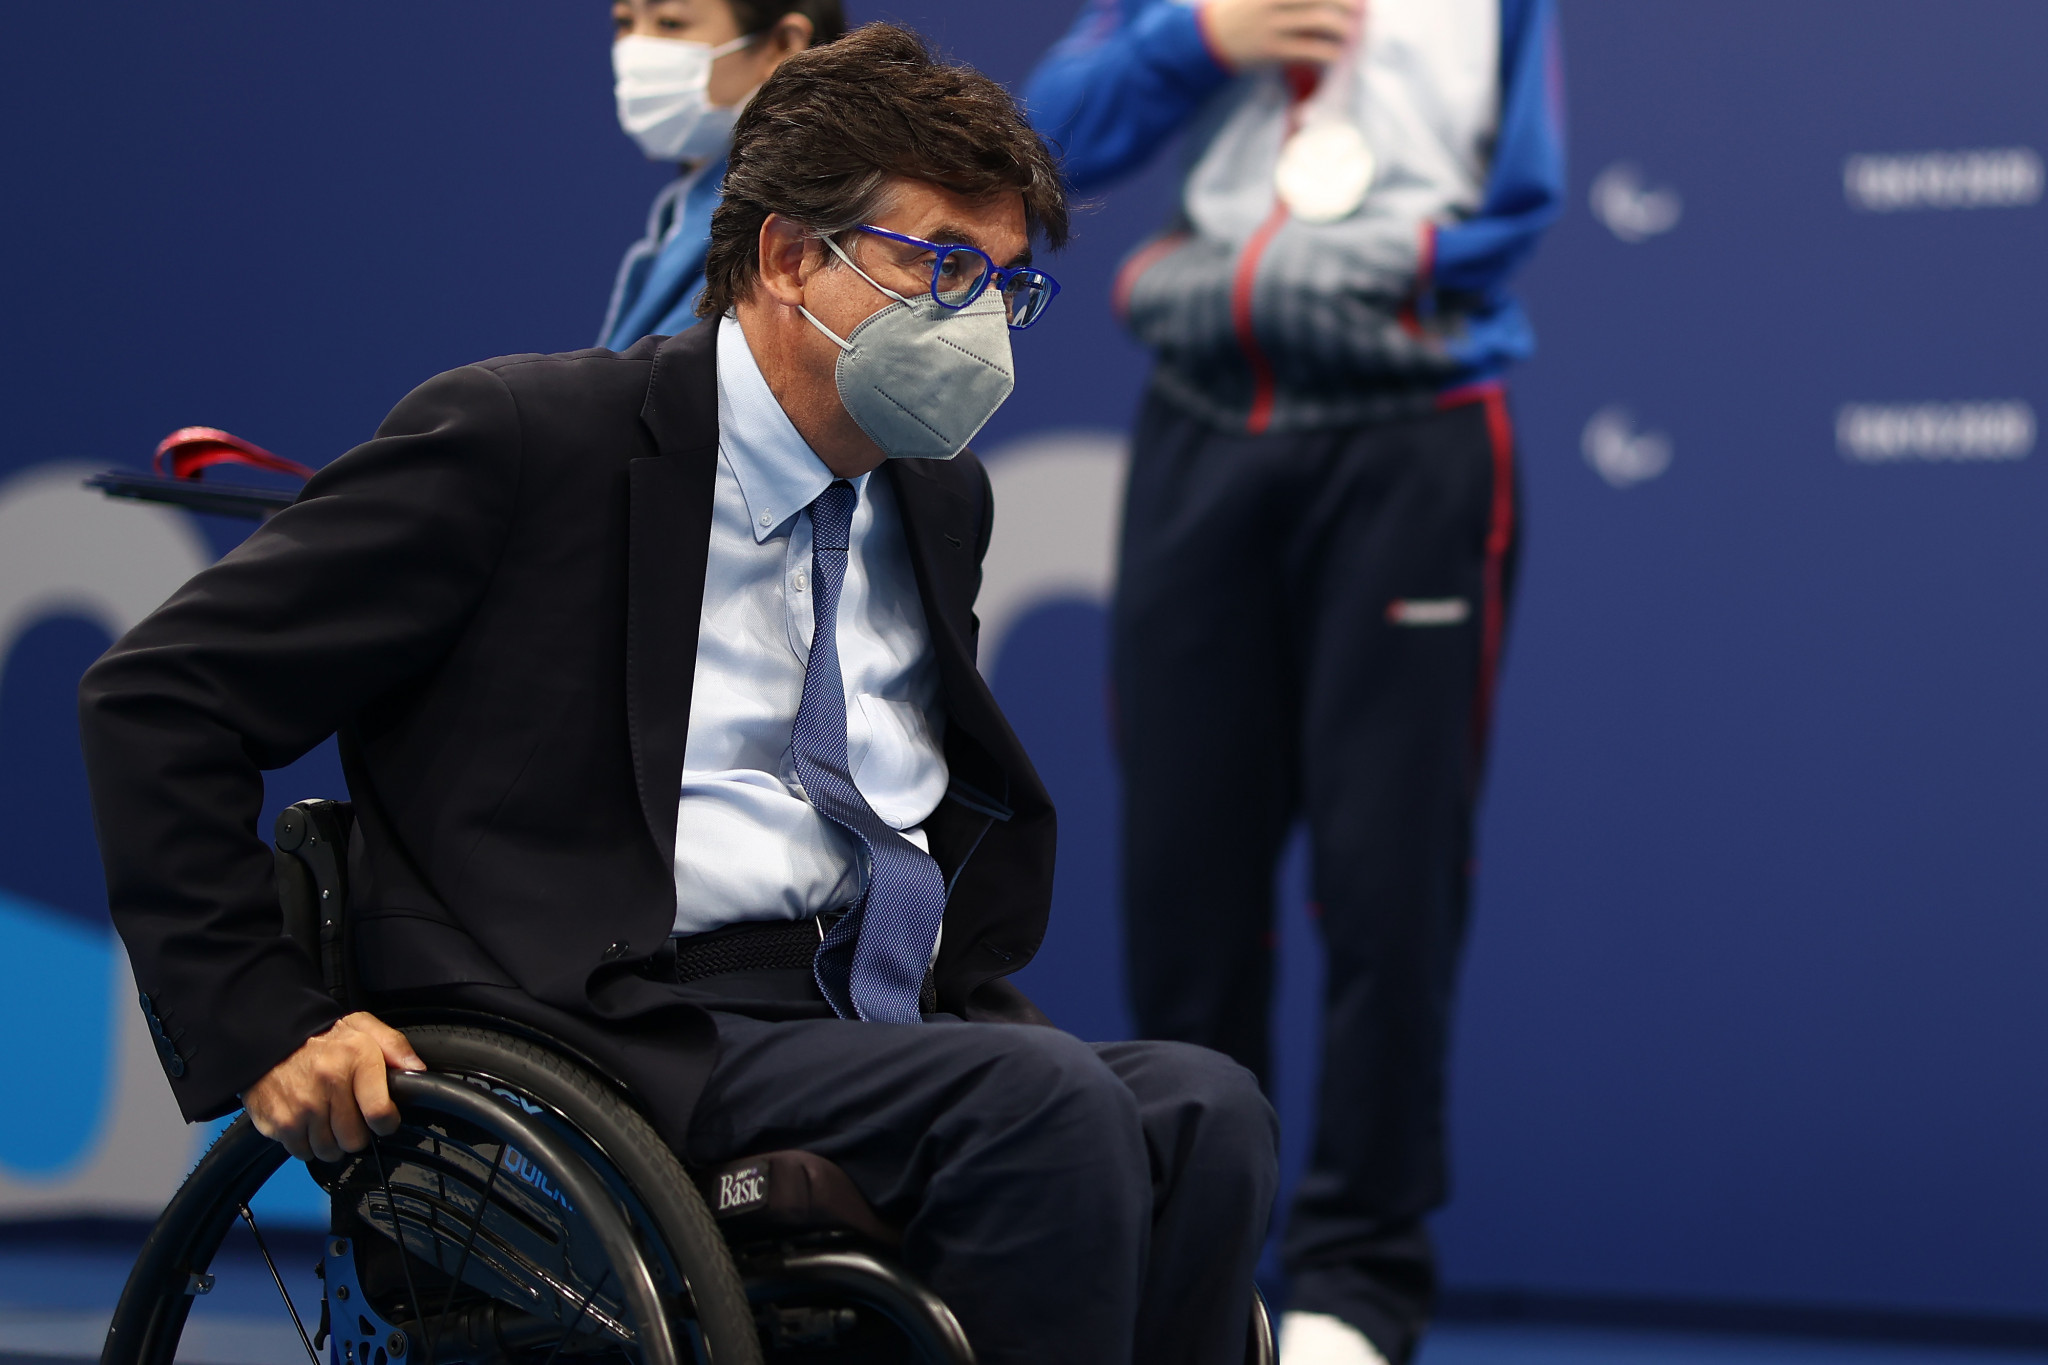 Italian Paralympic Committee President Luca Pancalli is seeking re-election to the IPC Board ©Getty Images